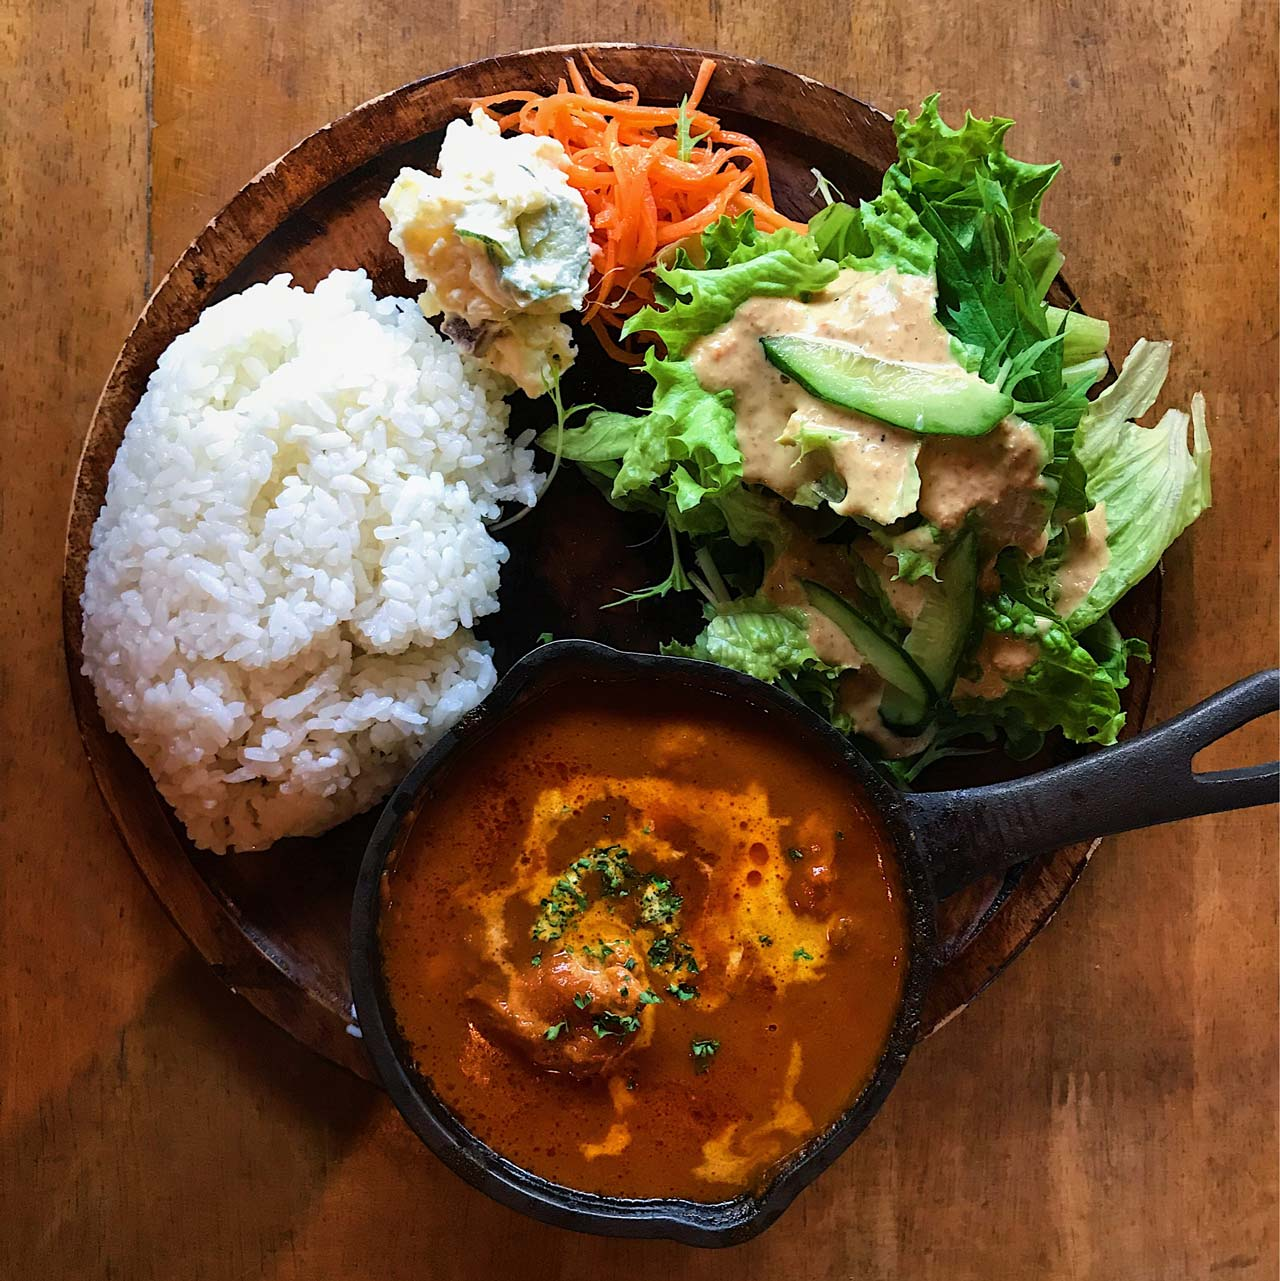 butter curry and salad in tokyo